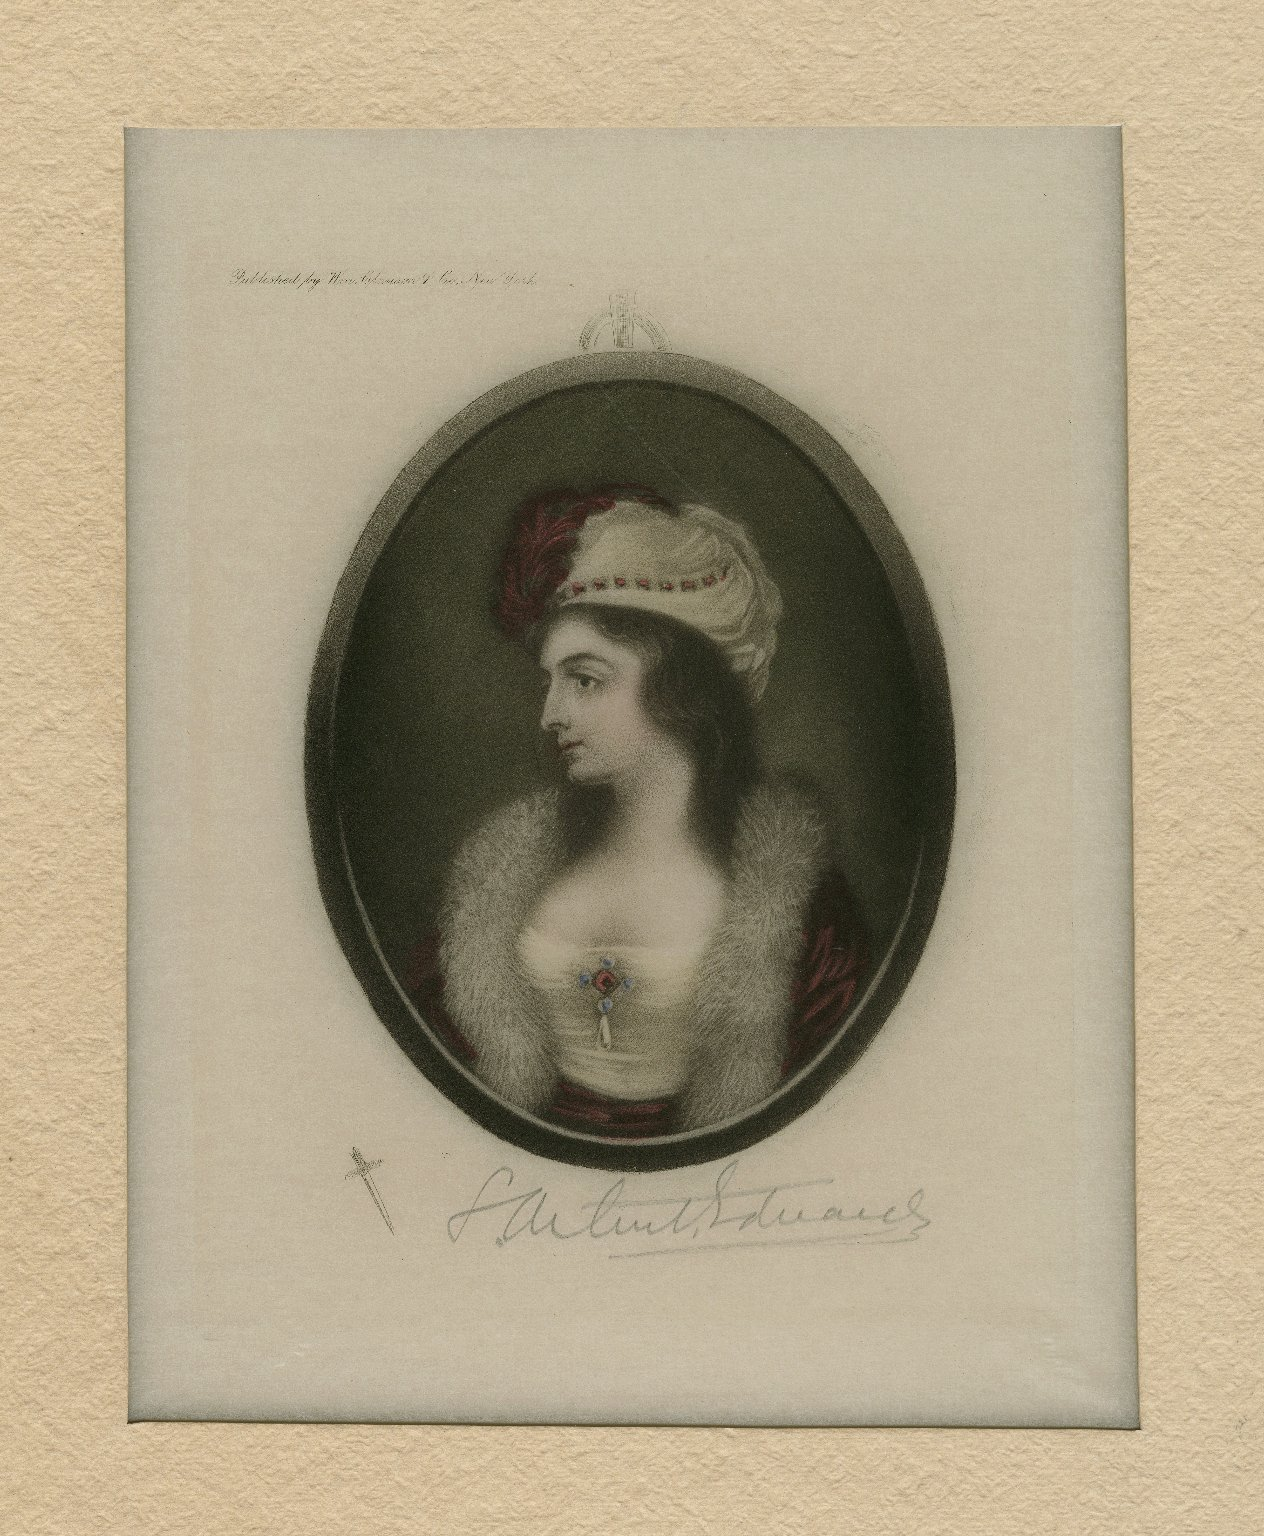 [Mrs. Sarah Siddons in a fur collar and a feathered hat] [graphic] / S. Arlent Edwards.